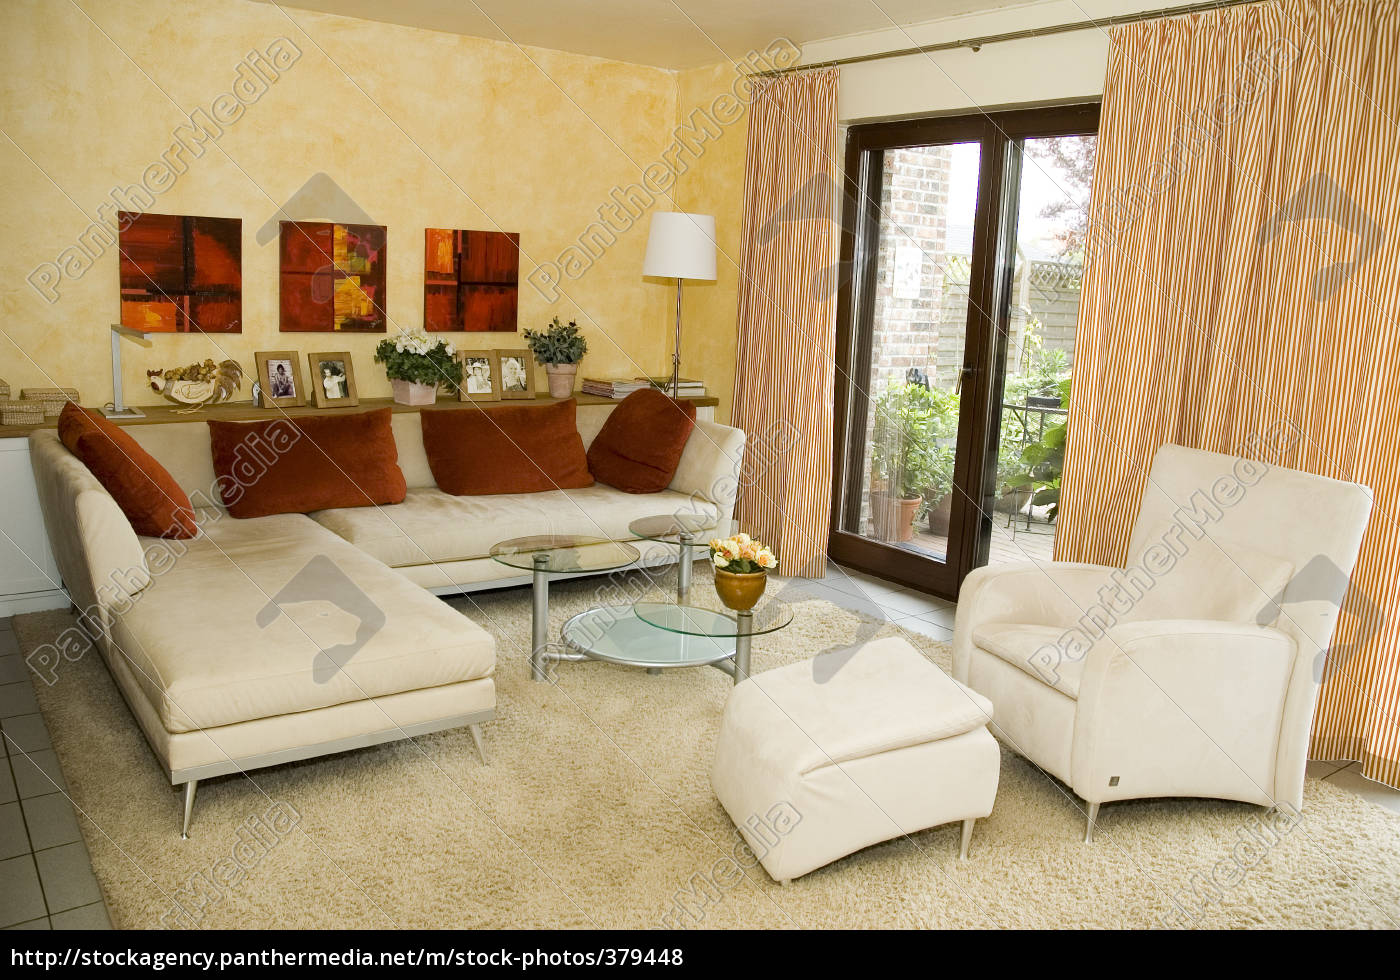 living, rooms - 379448